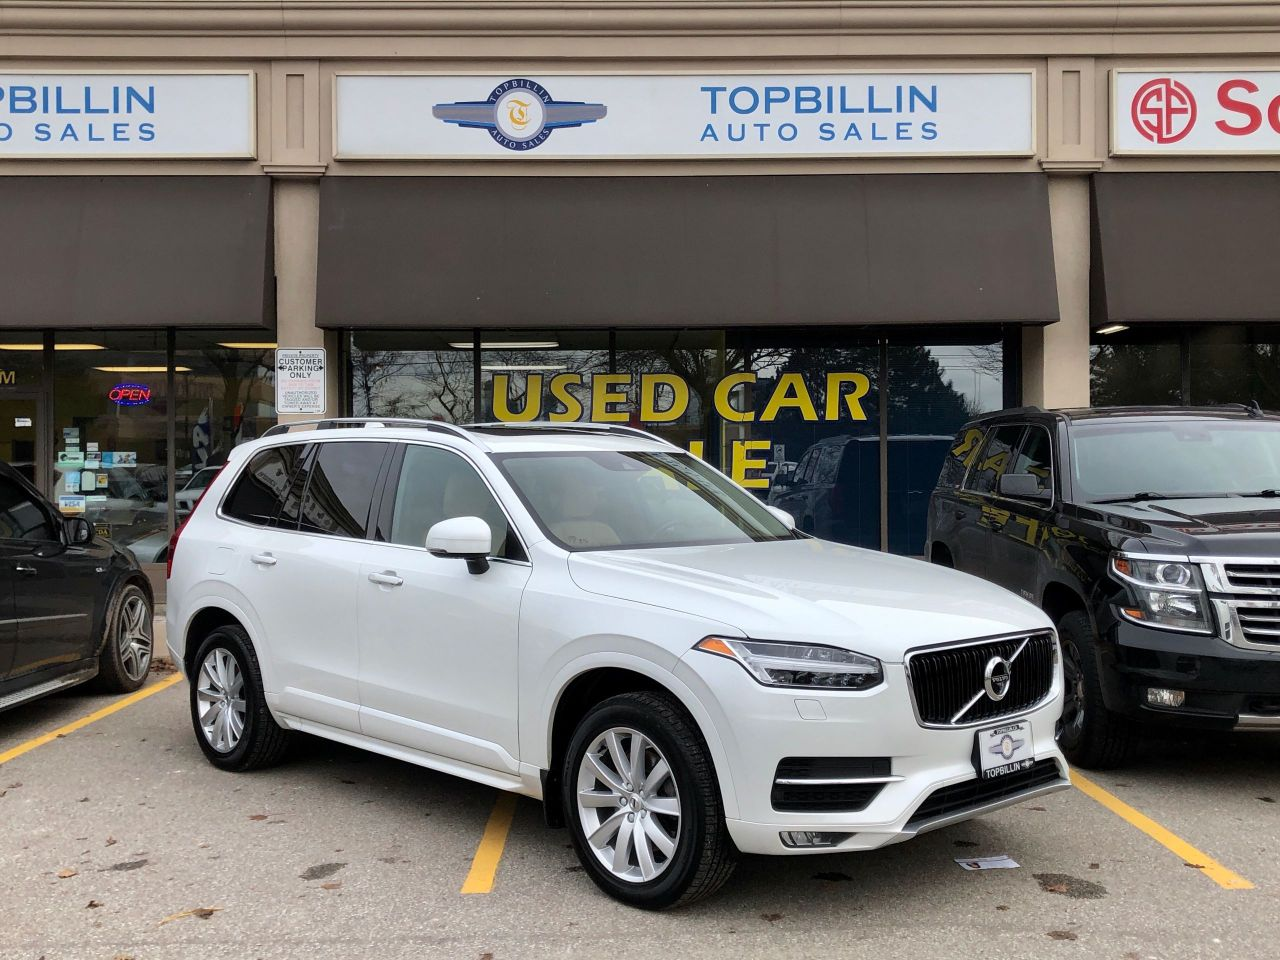 2016 Volvo XC90 T6 AWD, Navi, Pano Roof, Fully loaded